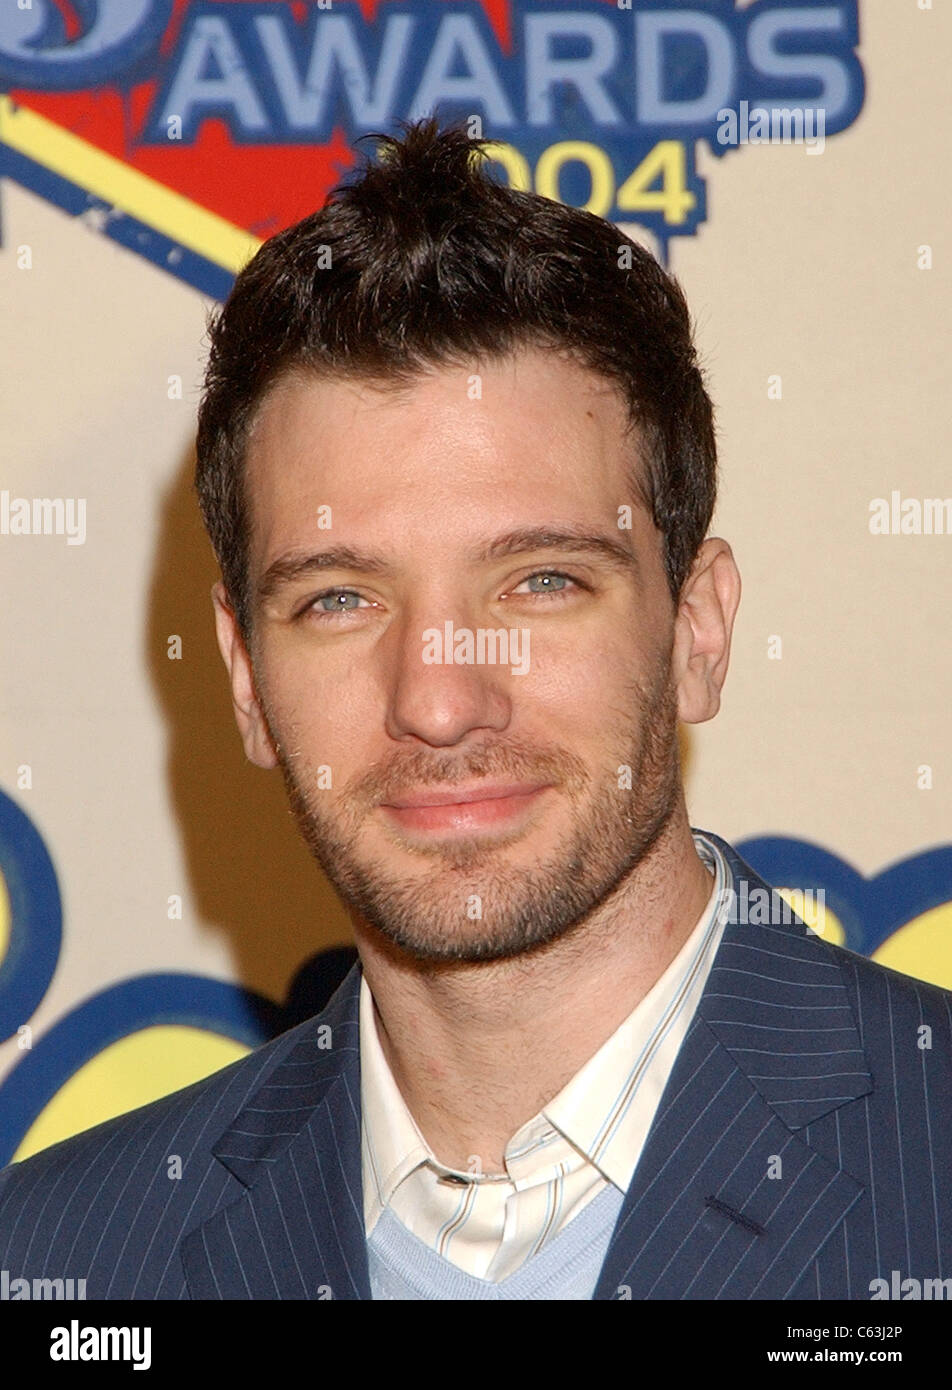 J.C. Chasez at Spike TV's VIDEO GAME AWARDS, Santa Monica, CA, December 14, 2004. (photo: John Hayes/Everett - Stock Image